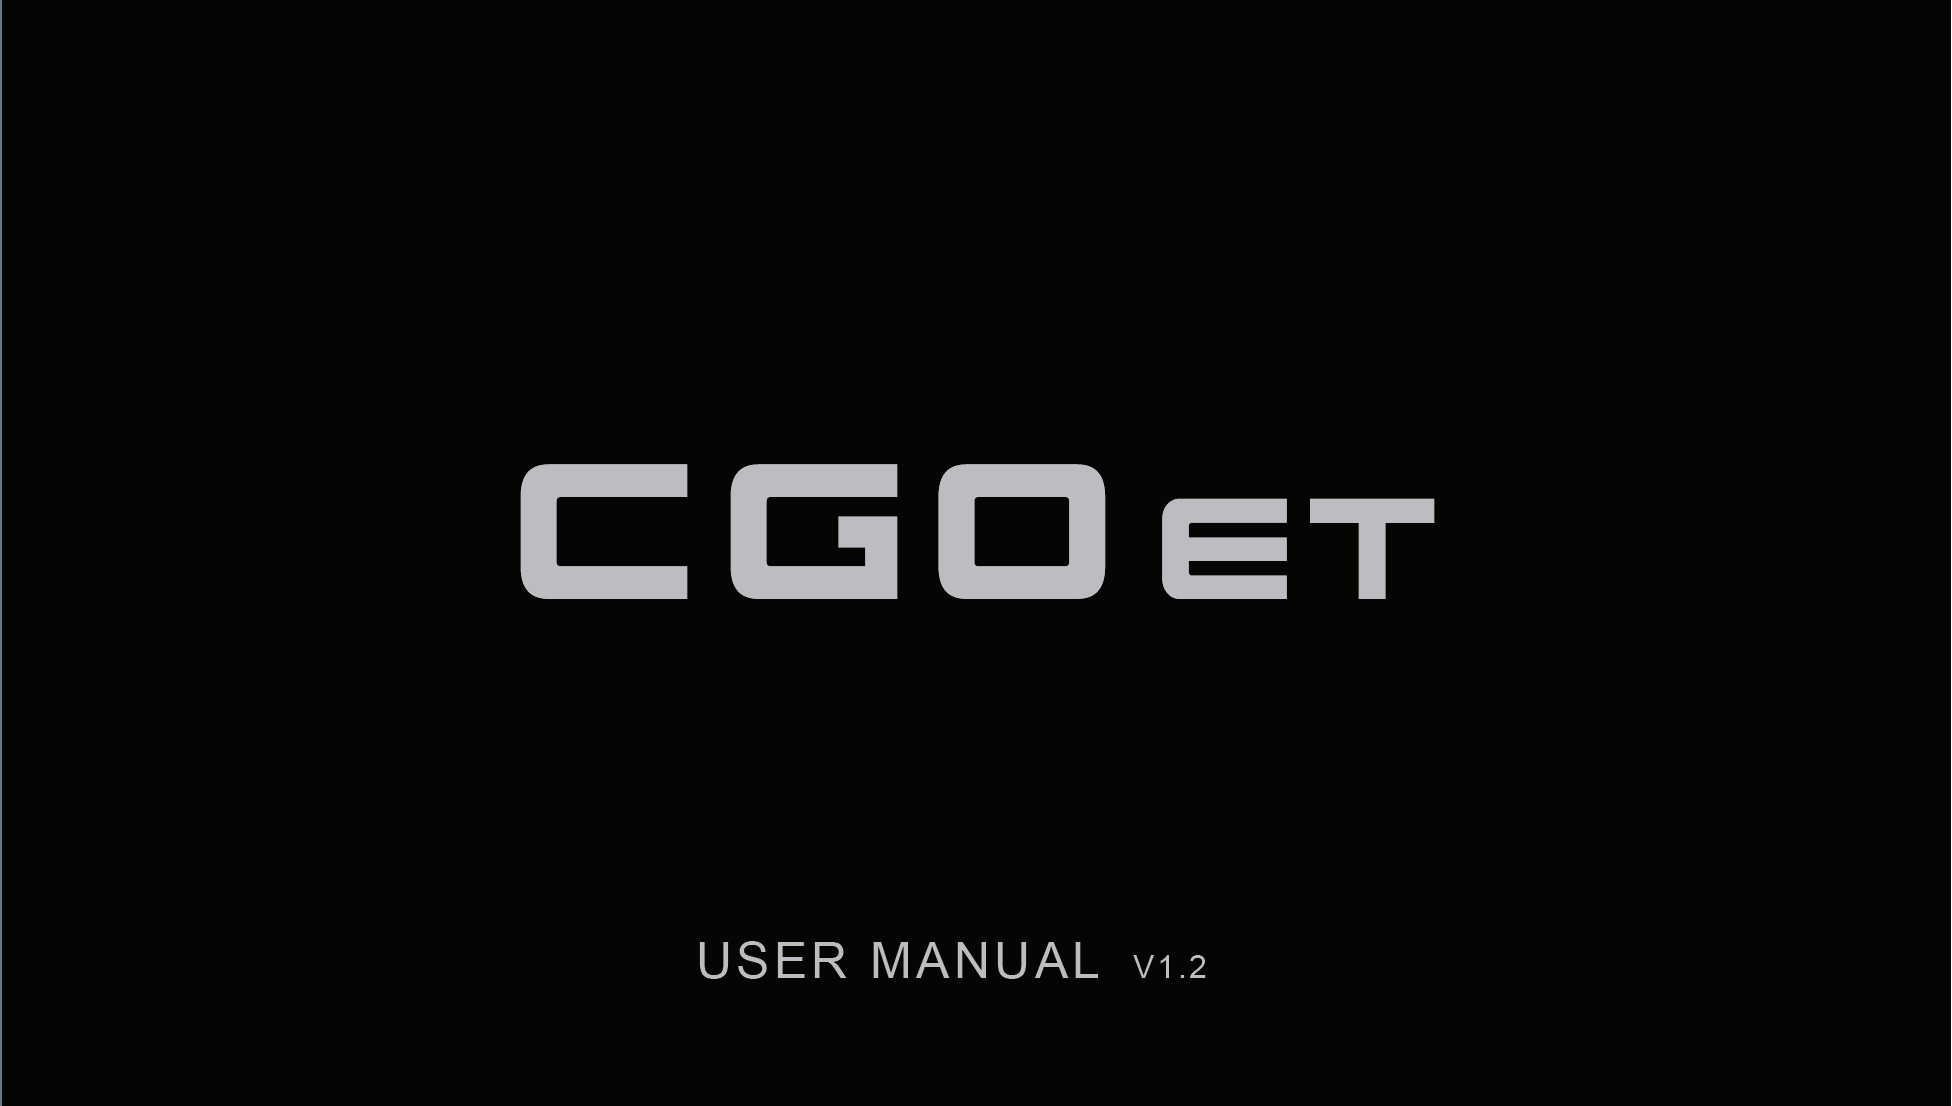 Yuneec CGOET User Manual